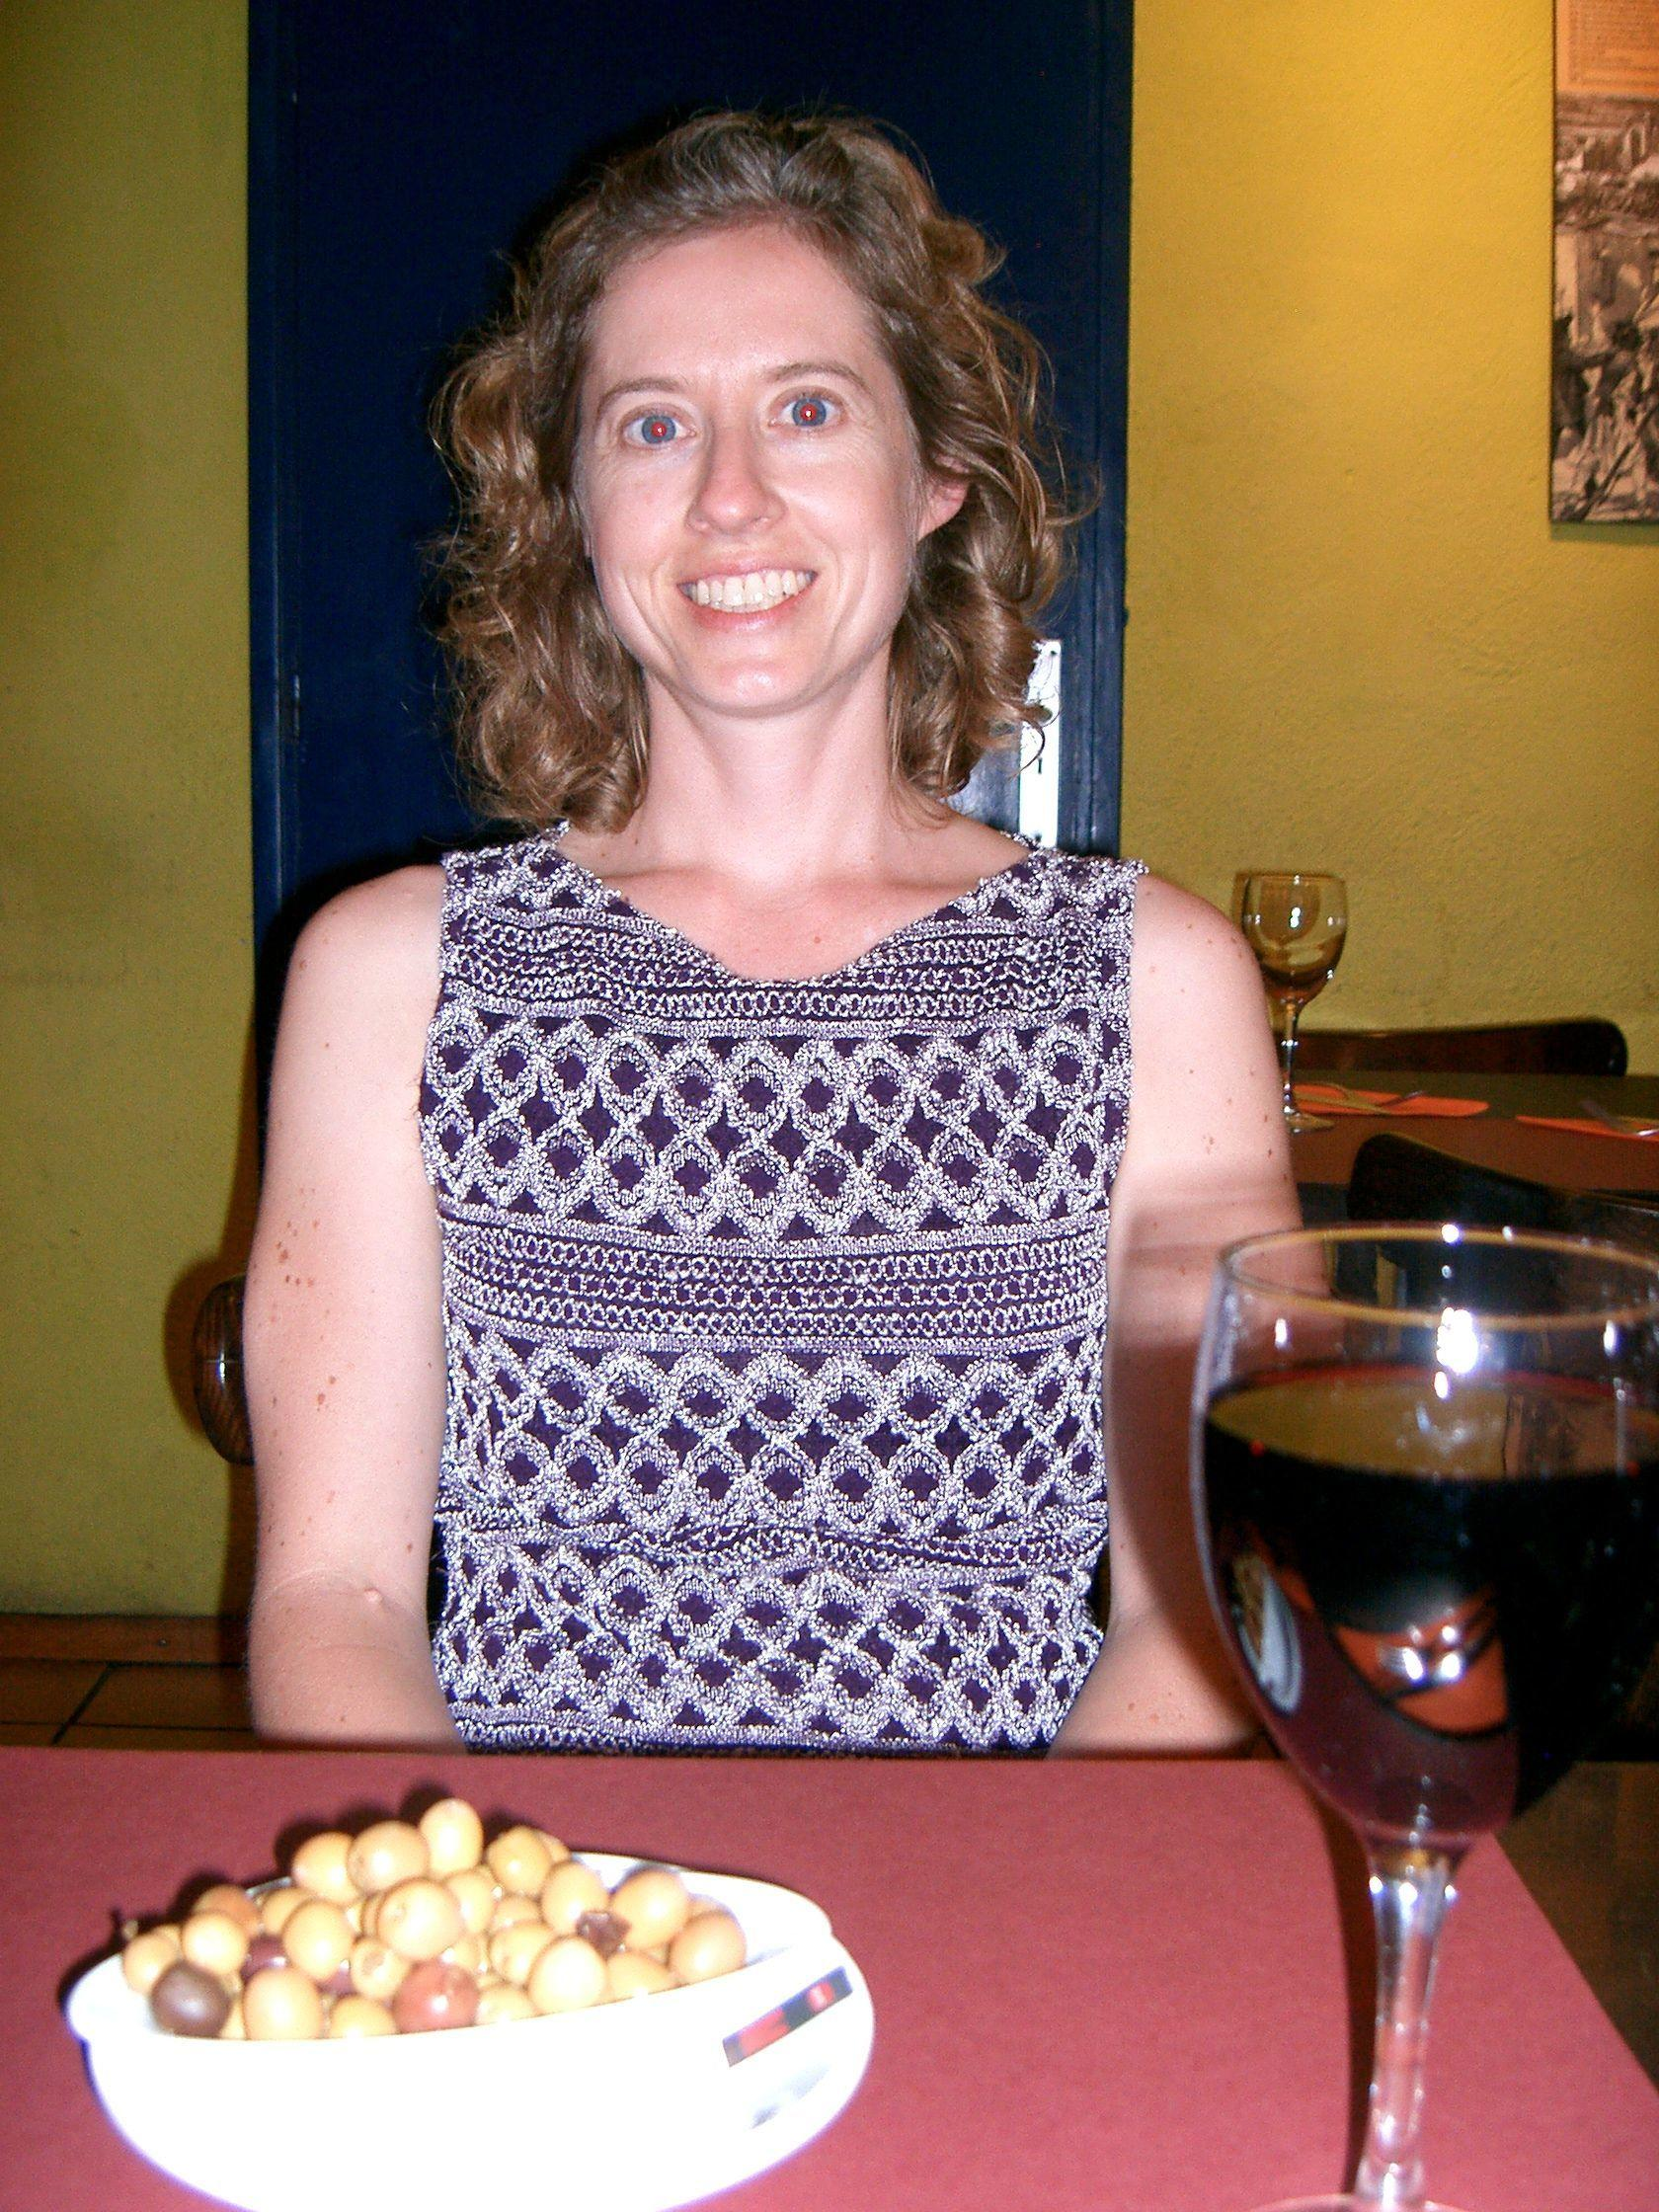 theresa christian personals Living-foods: personals: theresa miller id number: 002956: date posted: jan 7, 2003: name: theresa miller: gender: male: age: 38: location: birmingham, mi, usa: i eat.